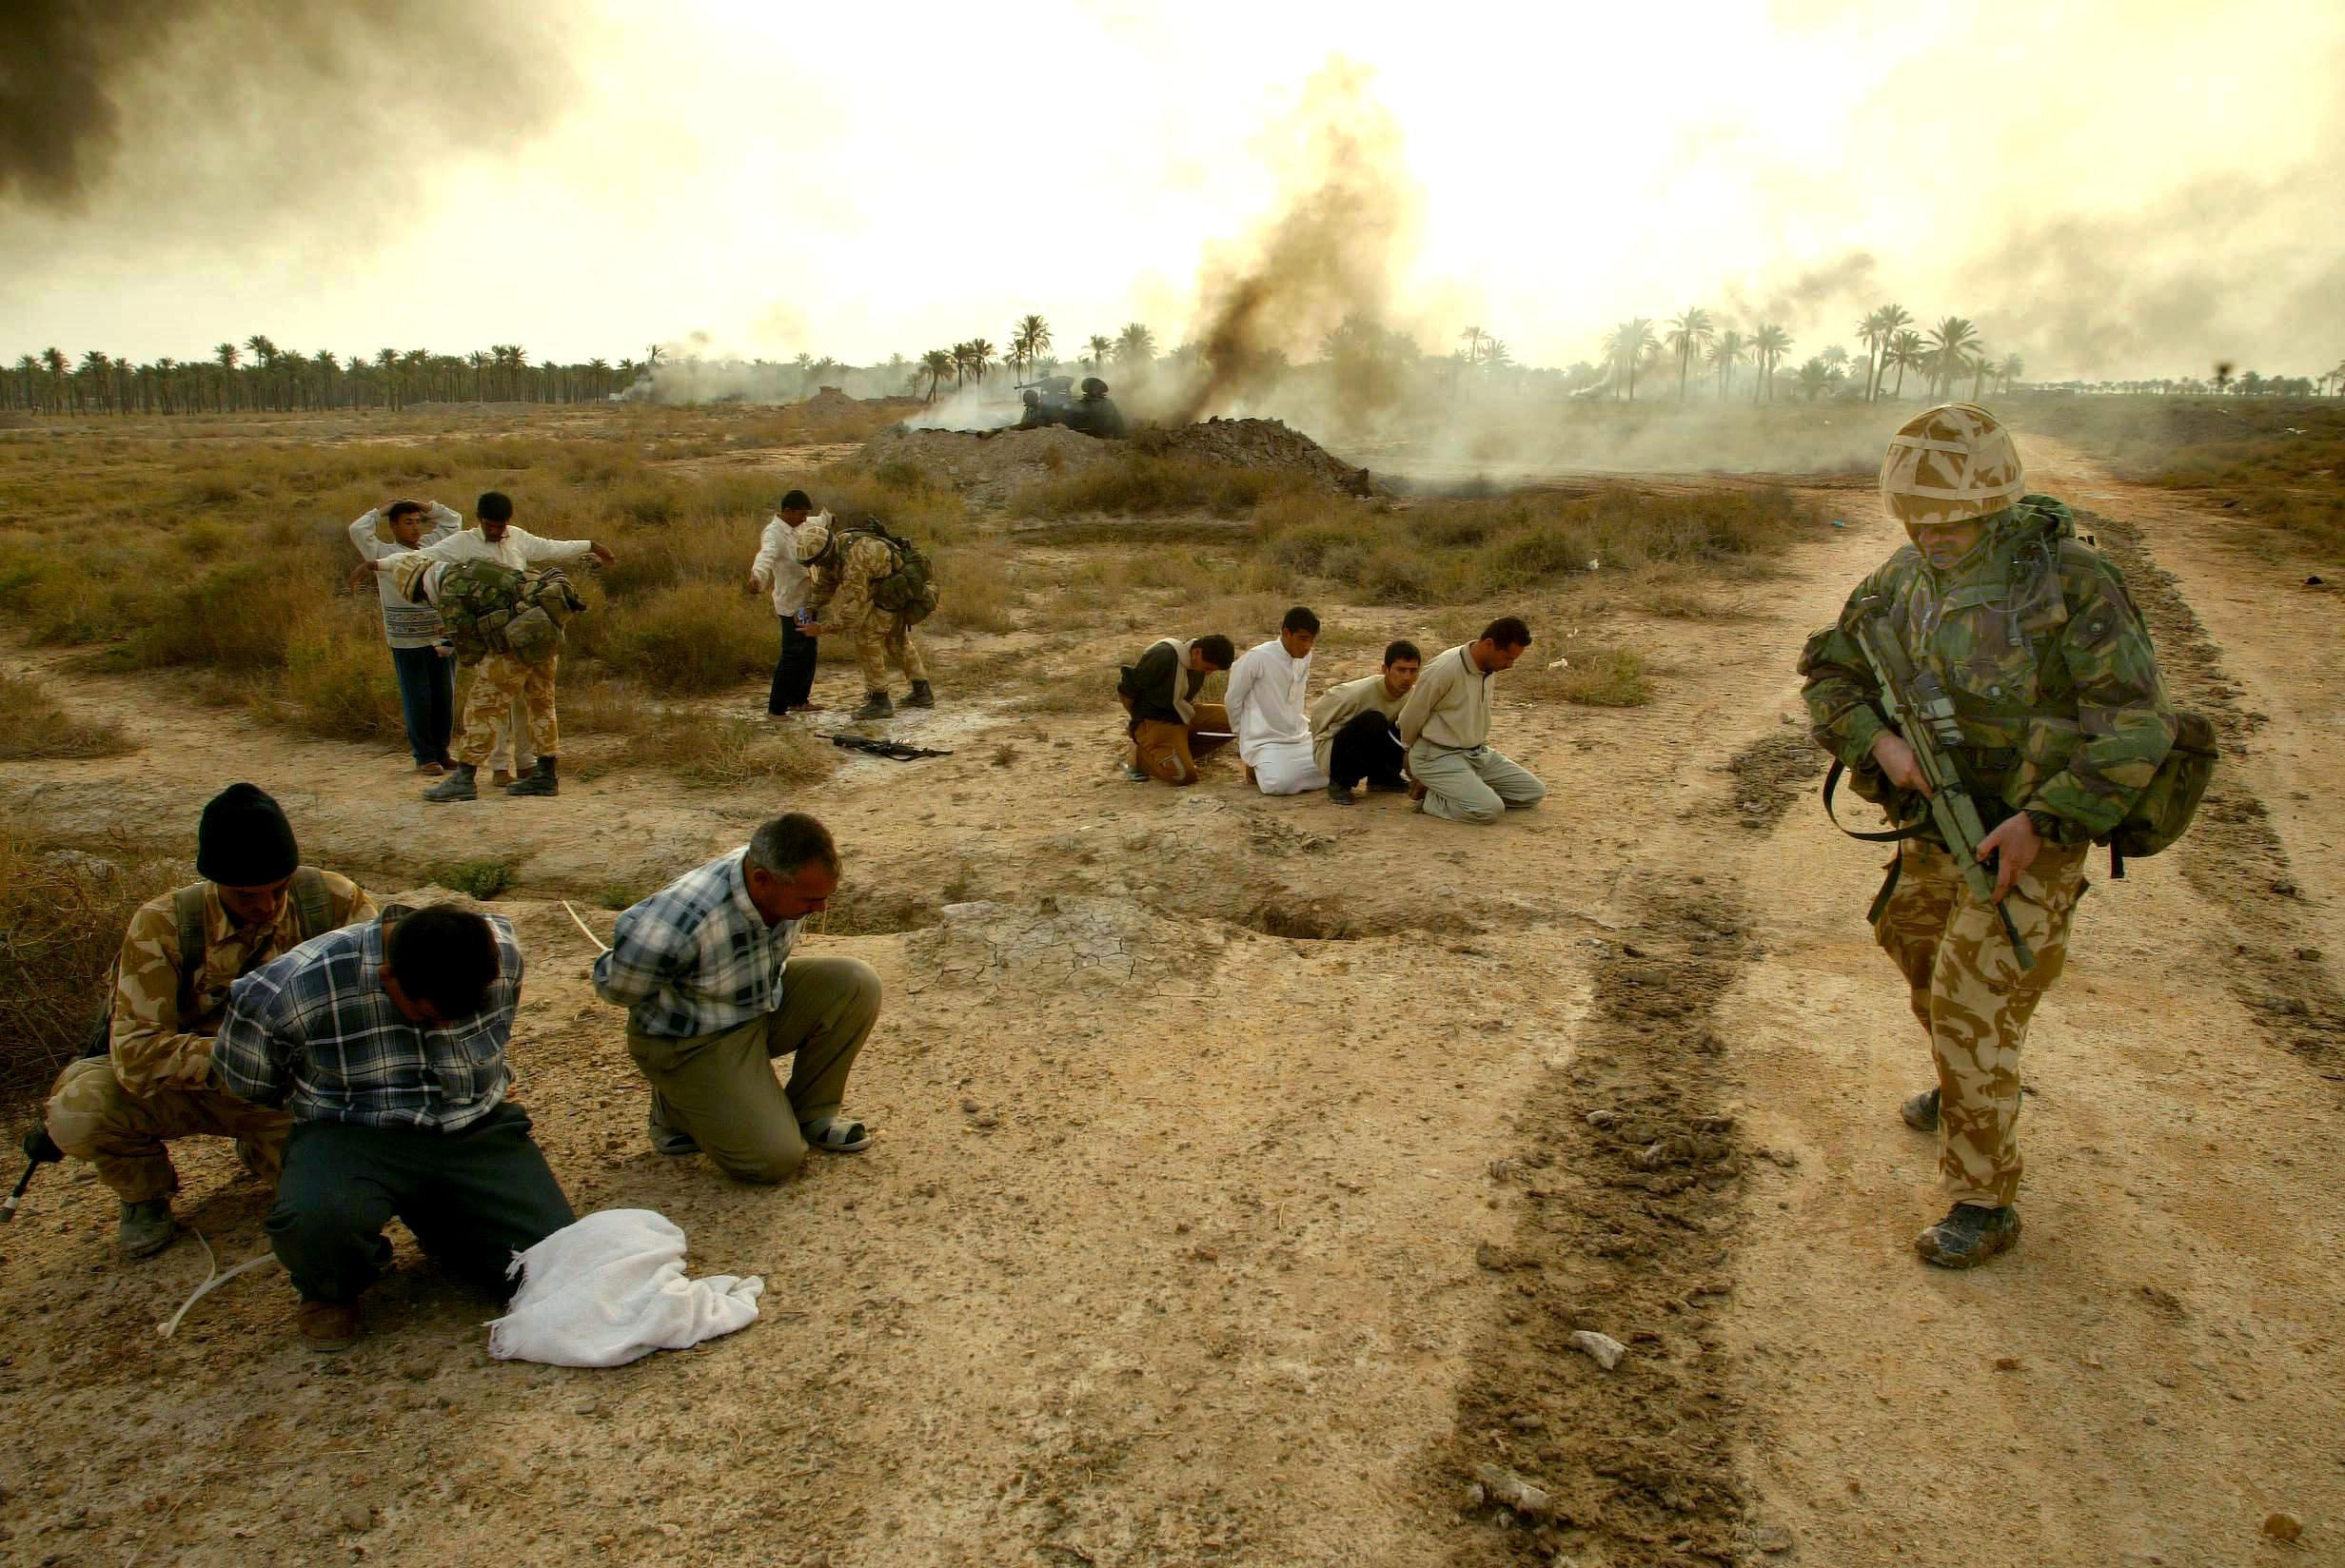 british soldiers accused of torture and abuse during iraq